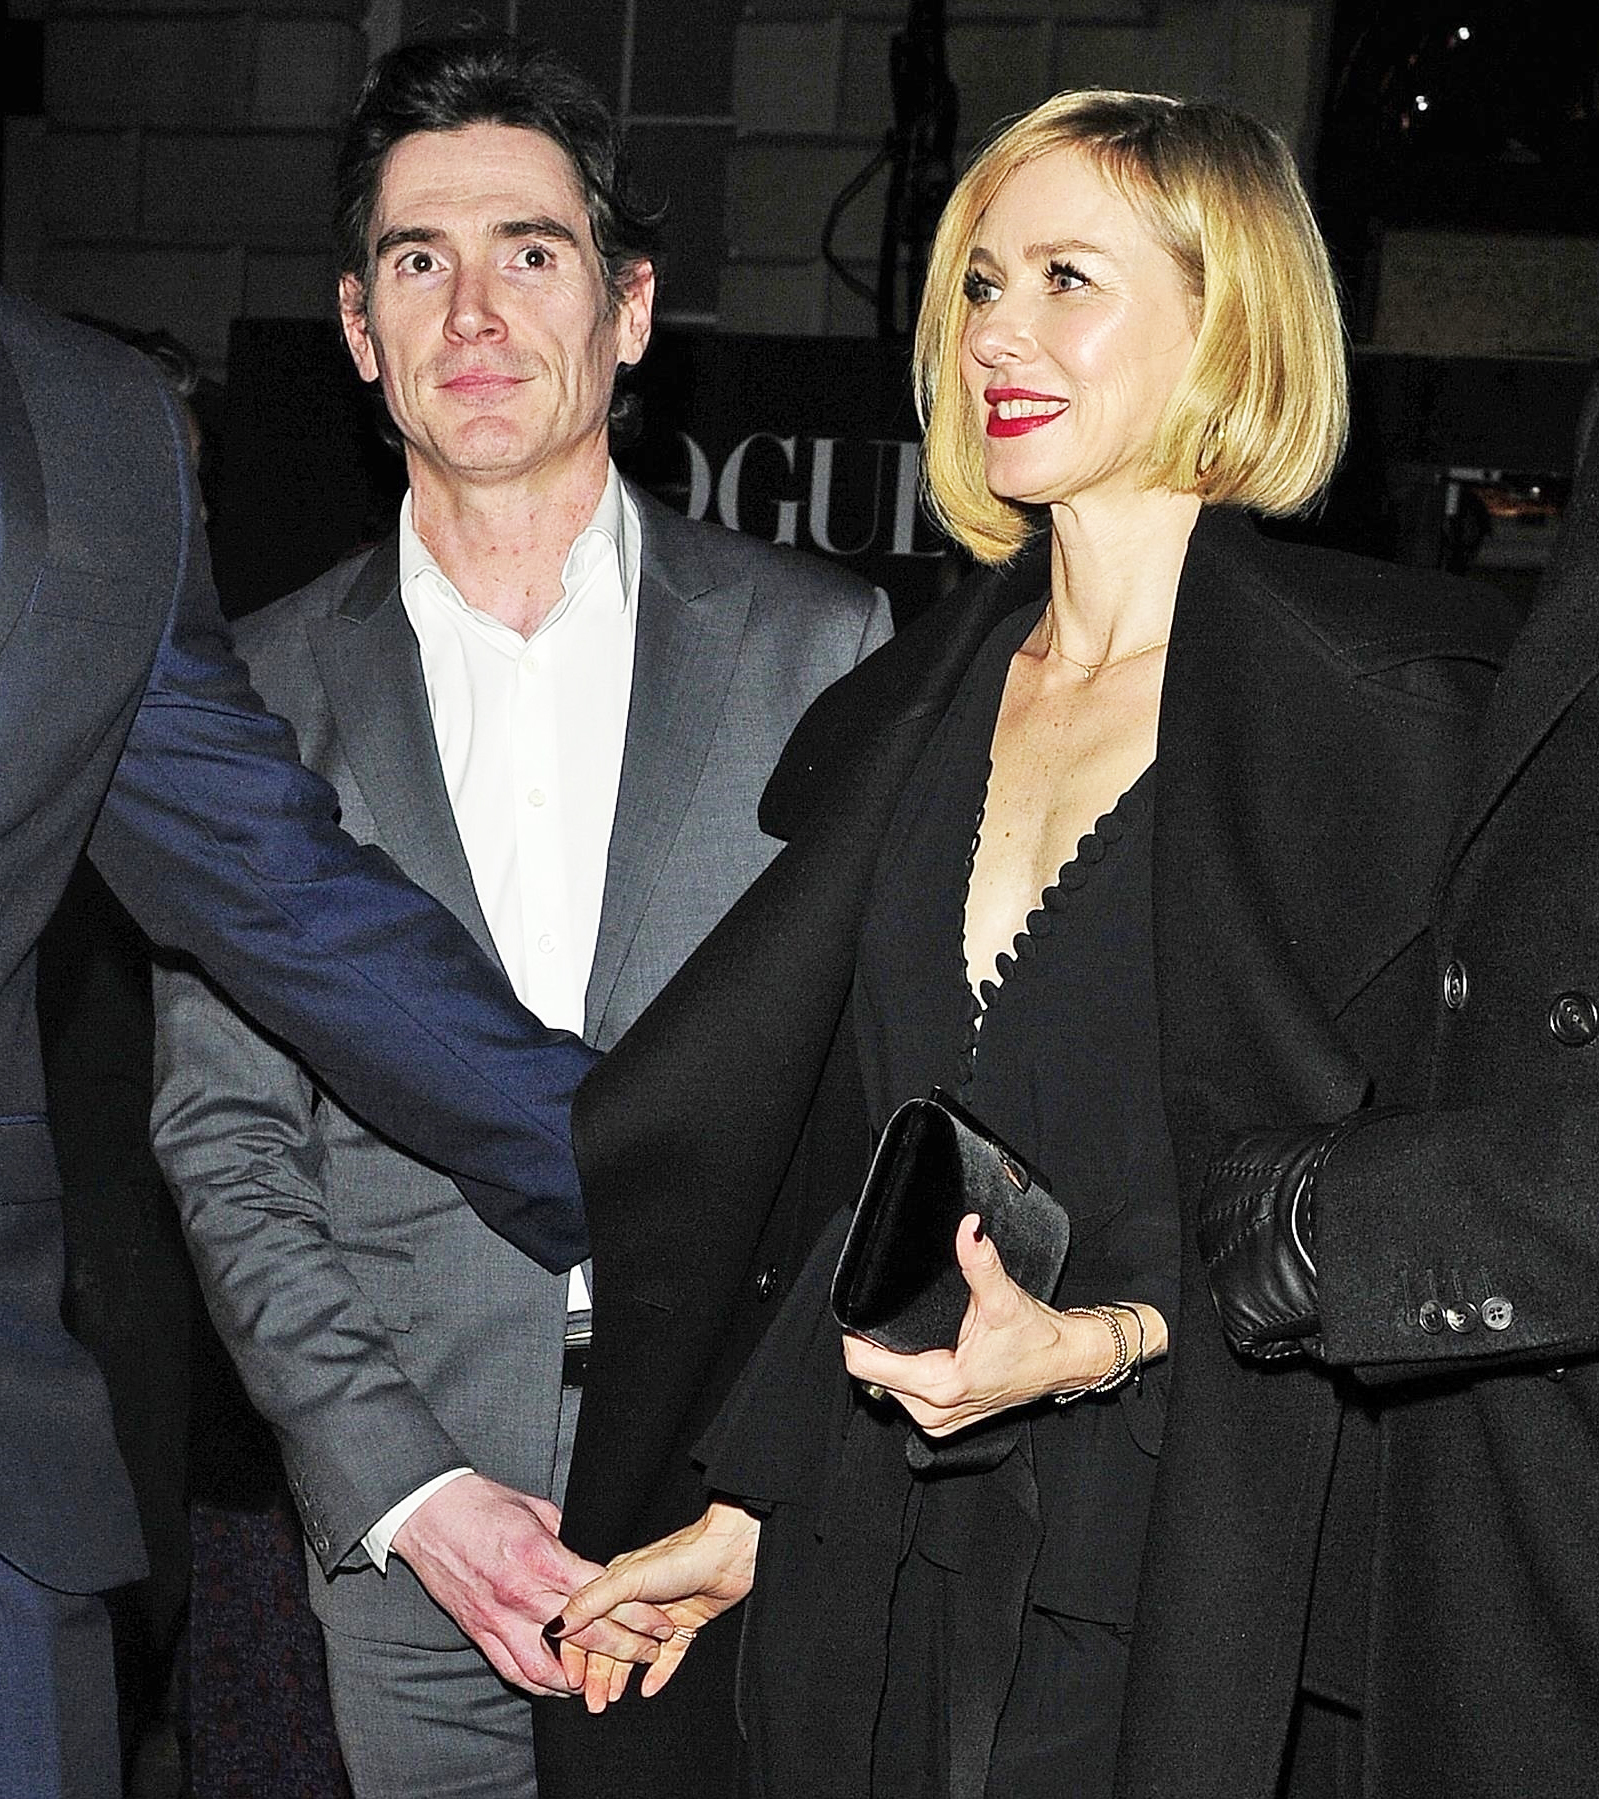 Who is billy crudup dating now